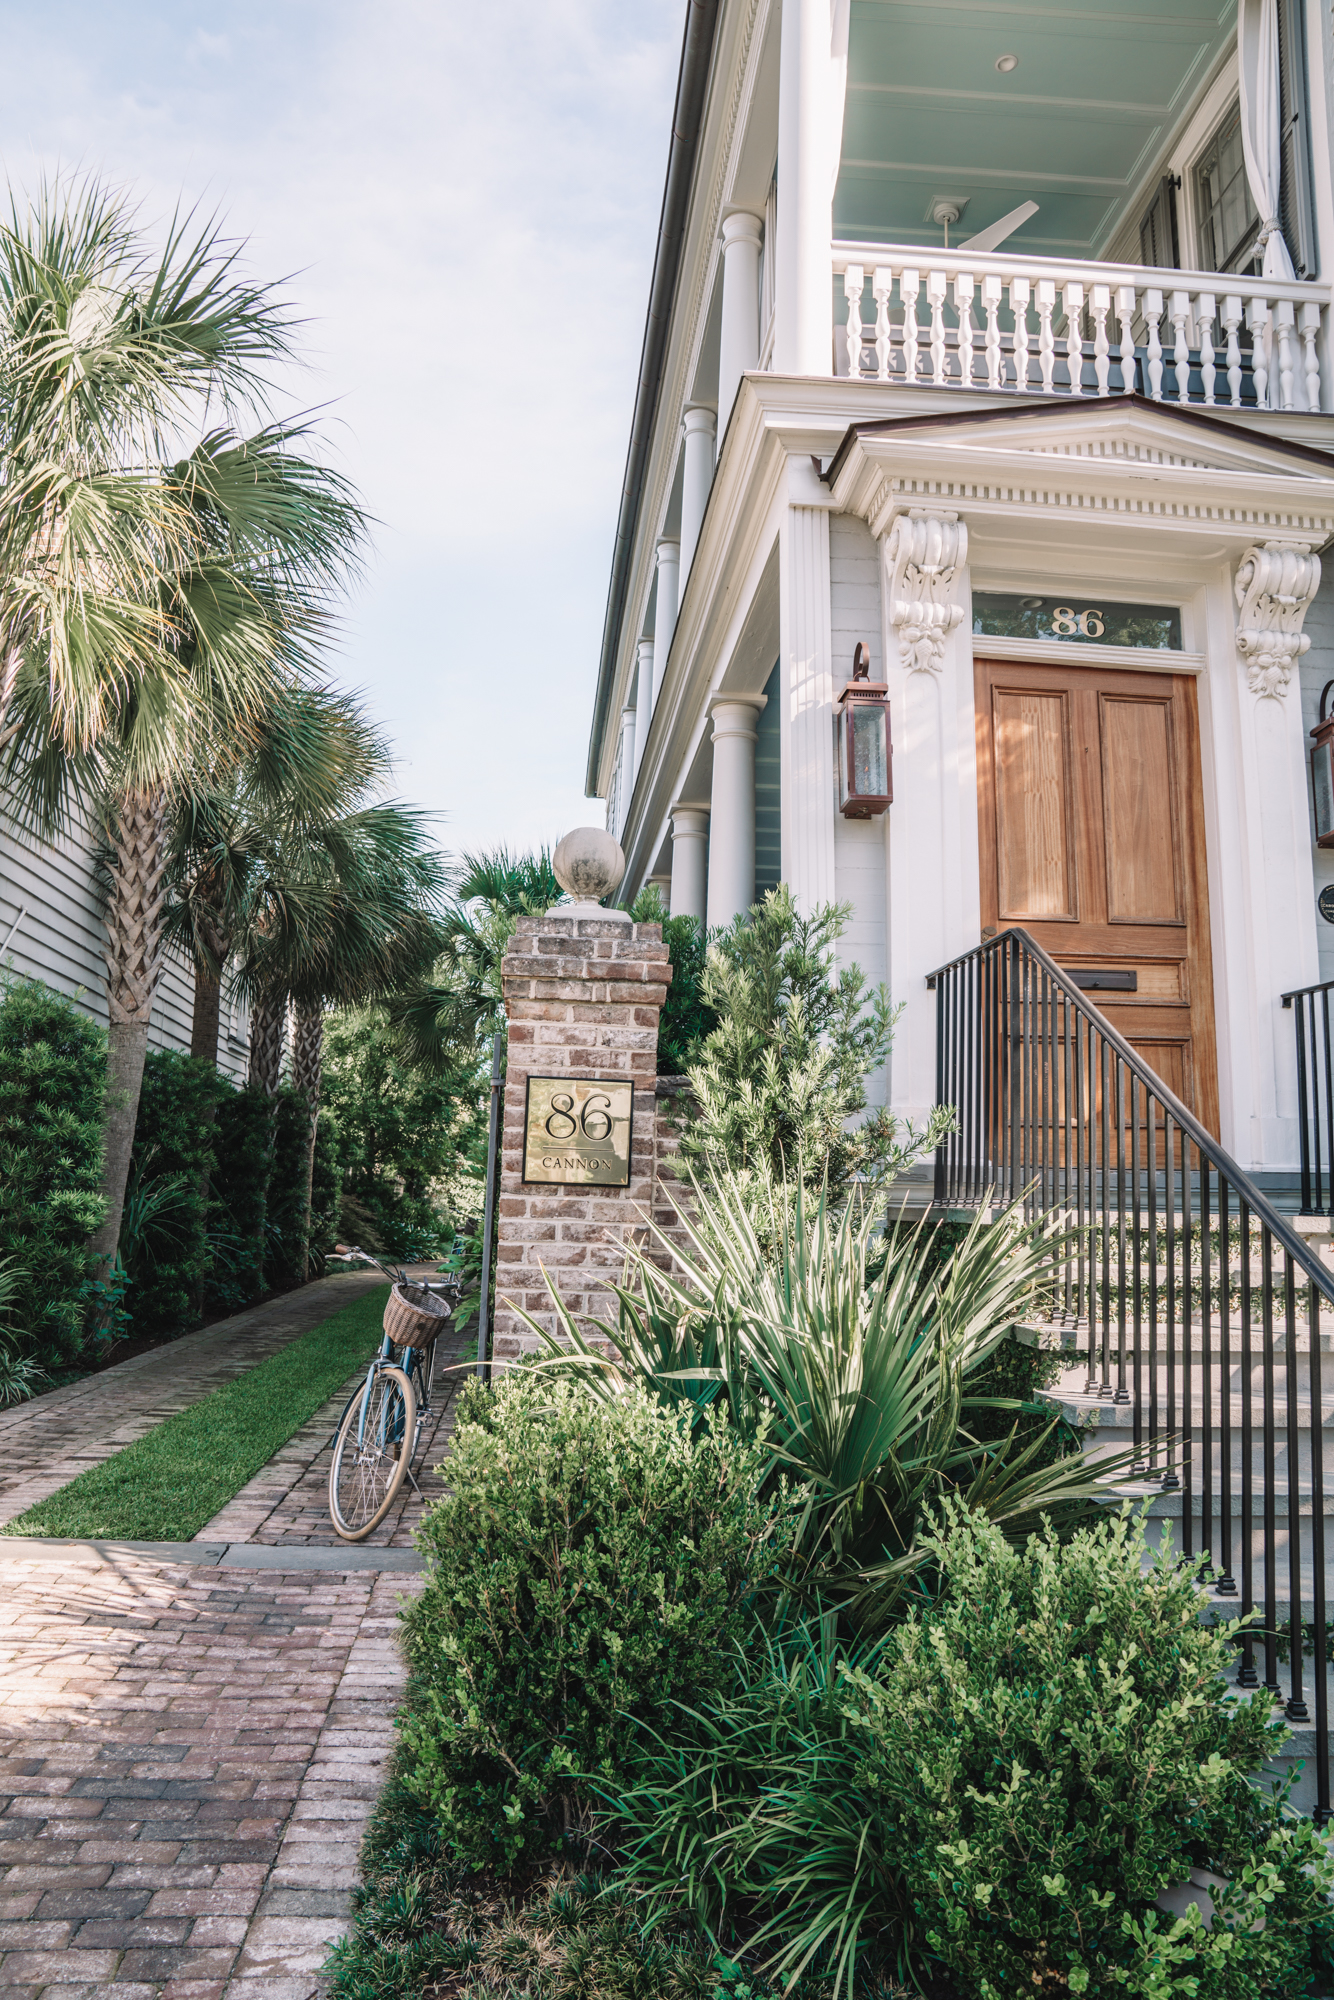 Romantic Things To Do in Charleston, SC - 86 Cannon Inn